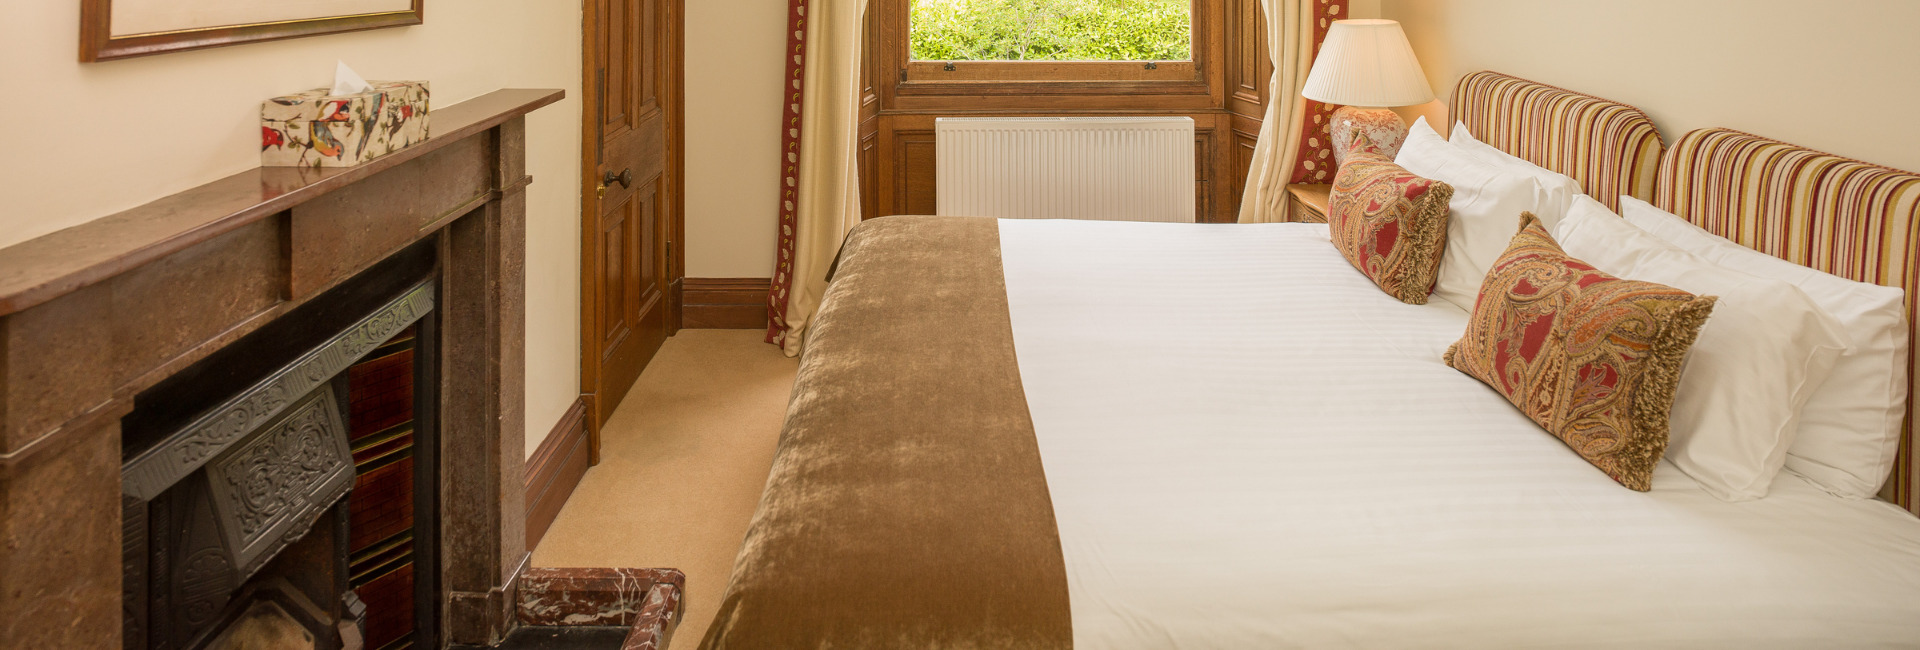 Main House Bedrooms